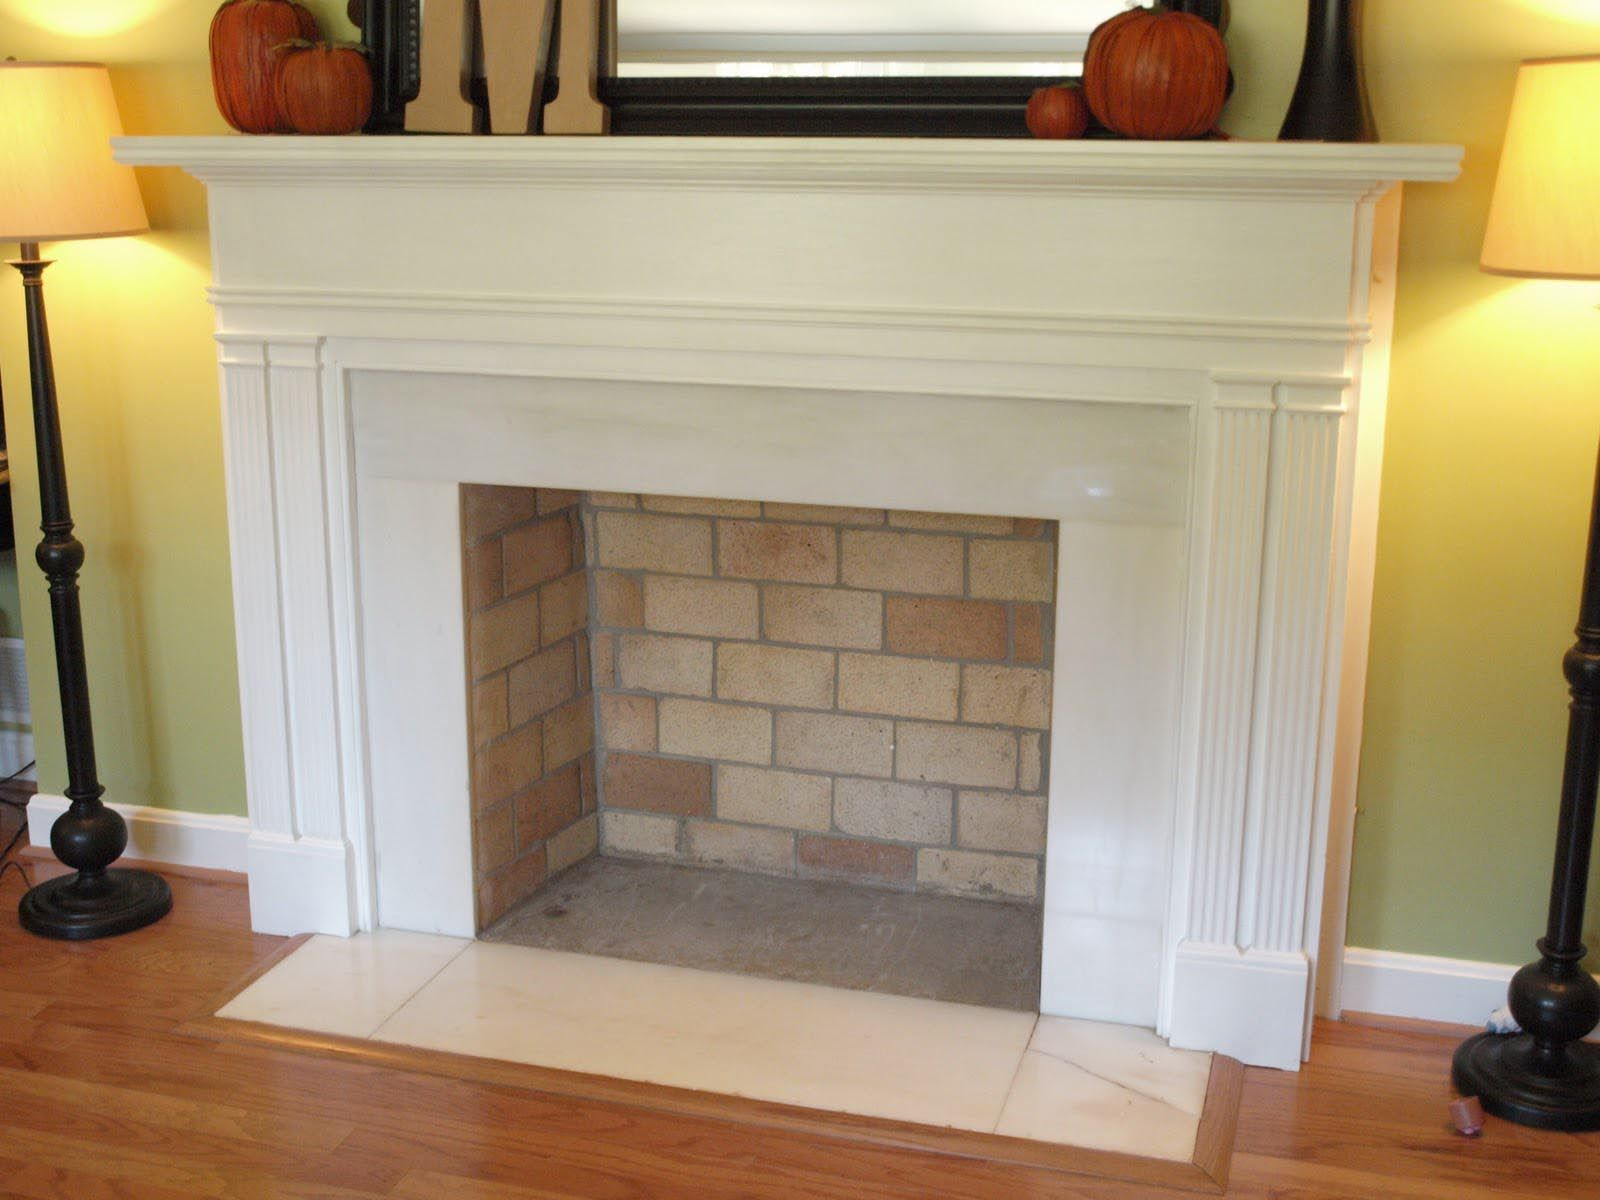 painting cover and to a an skills old surround make how know diy fireplace tos mantel door frame using